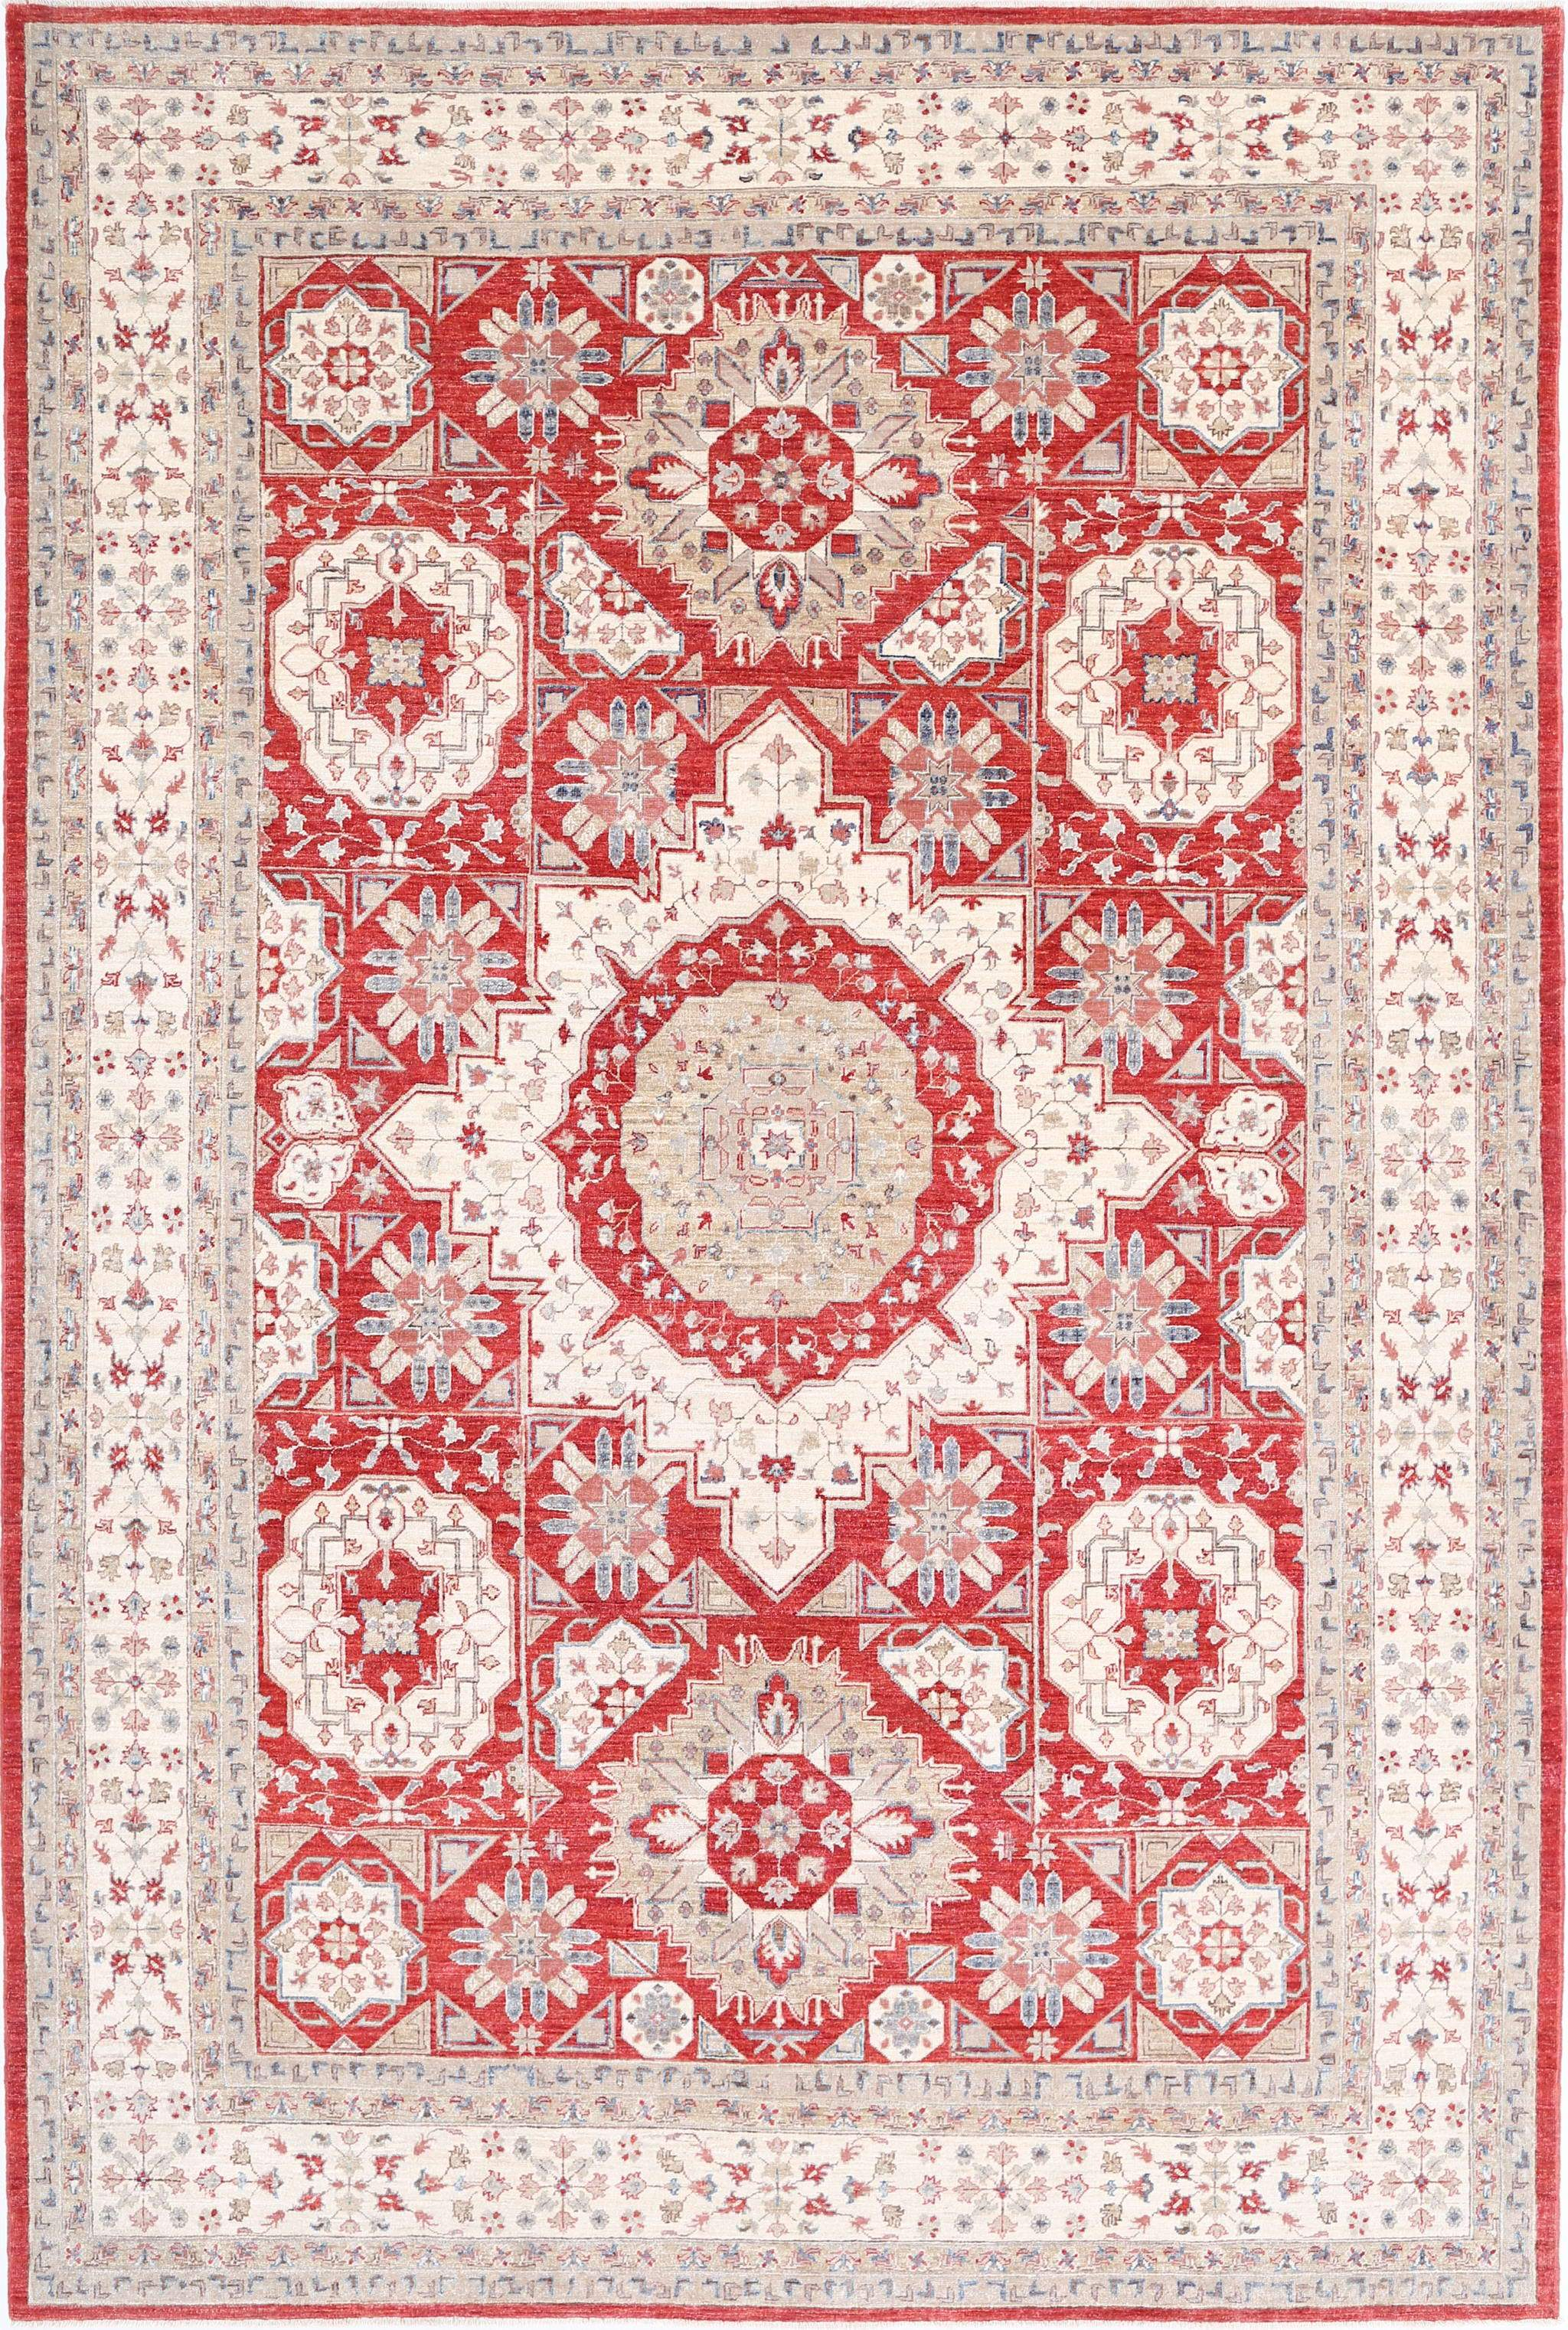 Handmade Vintage Area Rug, Carpet Culture